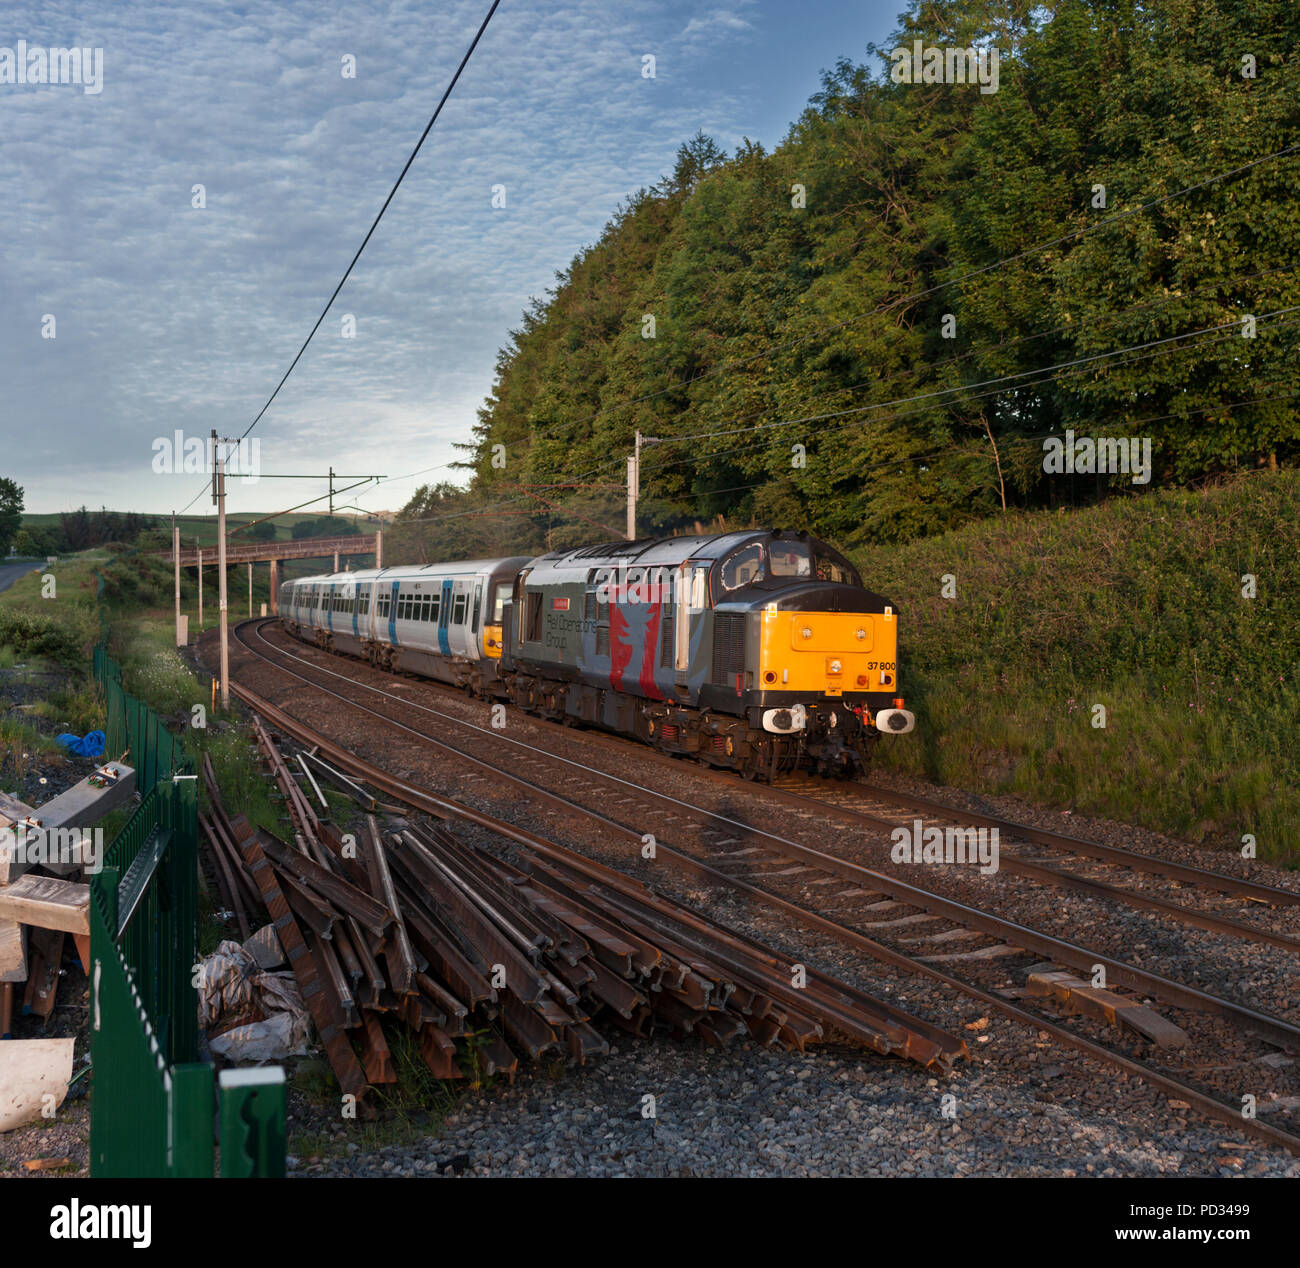 A Europhoenix  class 37 locomotive operated by Rail Operations group at Cowperthwaite (north of Oxenholme) hauling an electric train to Scotland - Stock Image